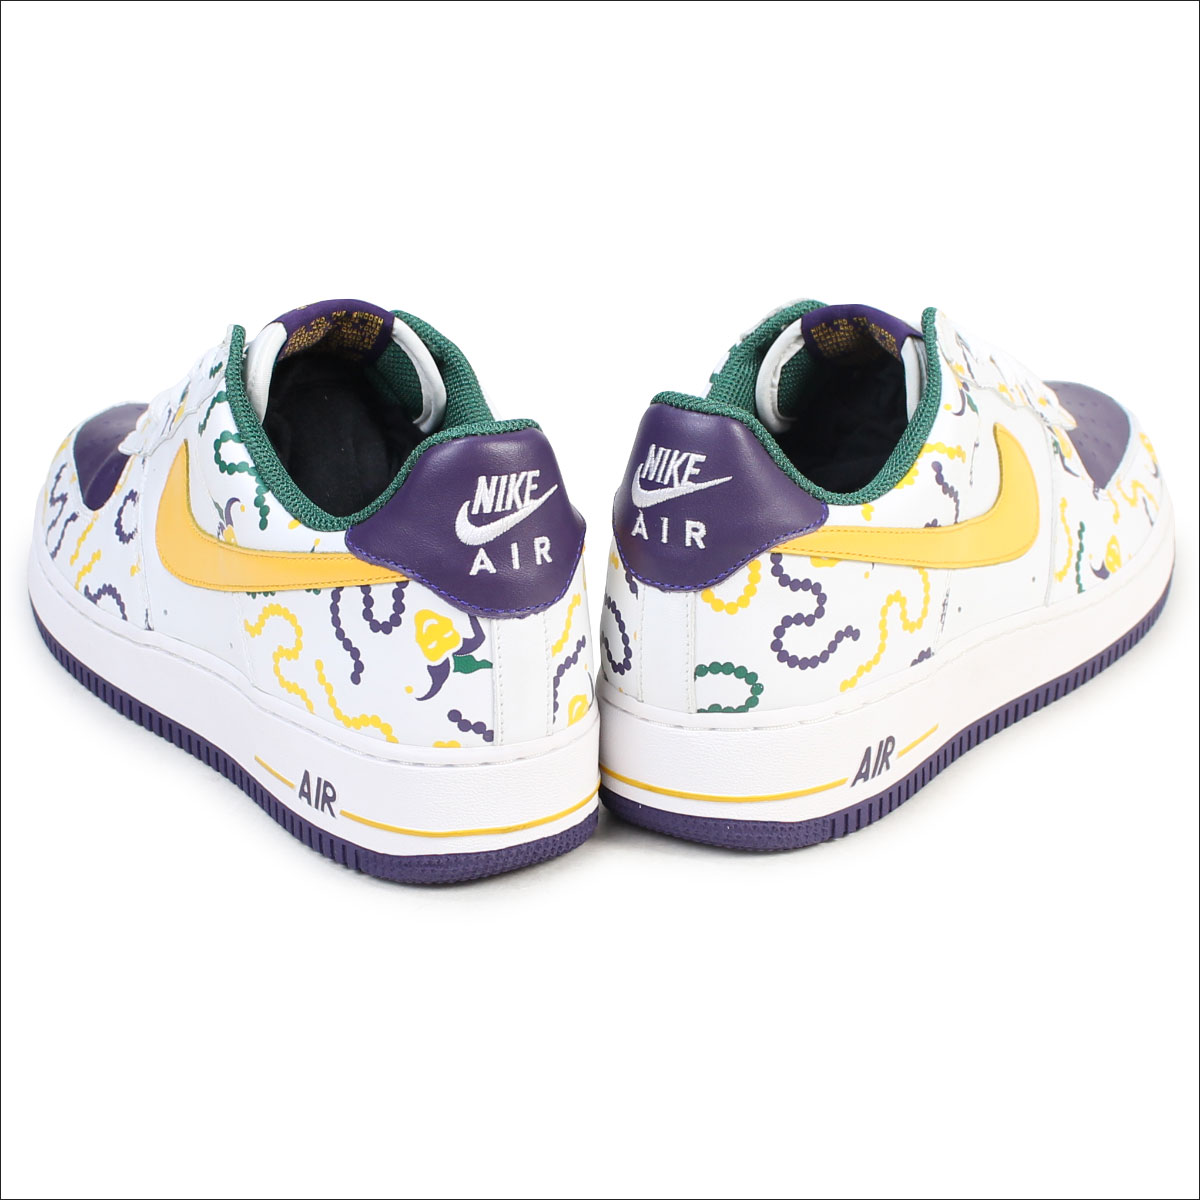 NIKE Nike air force 1 sneakers AIR FORCE 1 LOW MARDI GRAS men 306,353 172 shoes low white white